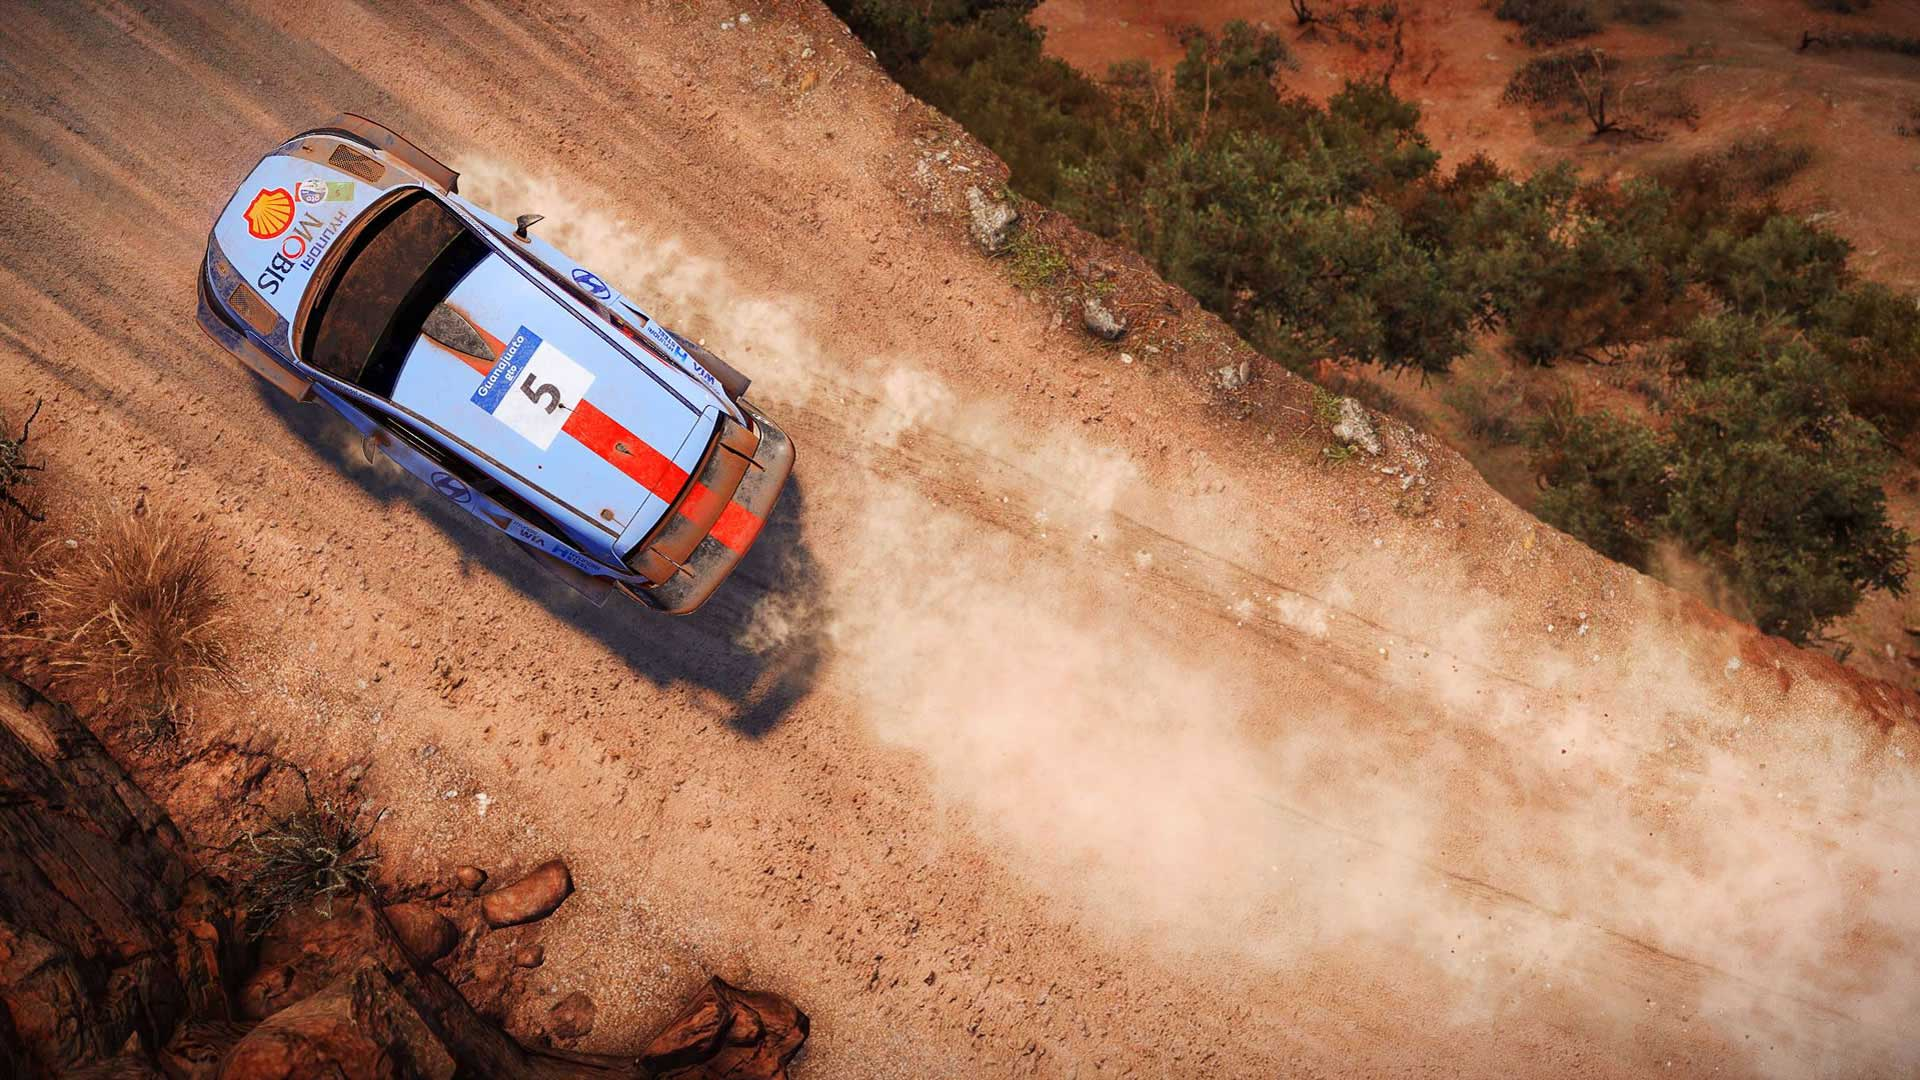 Place 6 out of 10: WRC 7